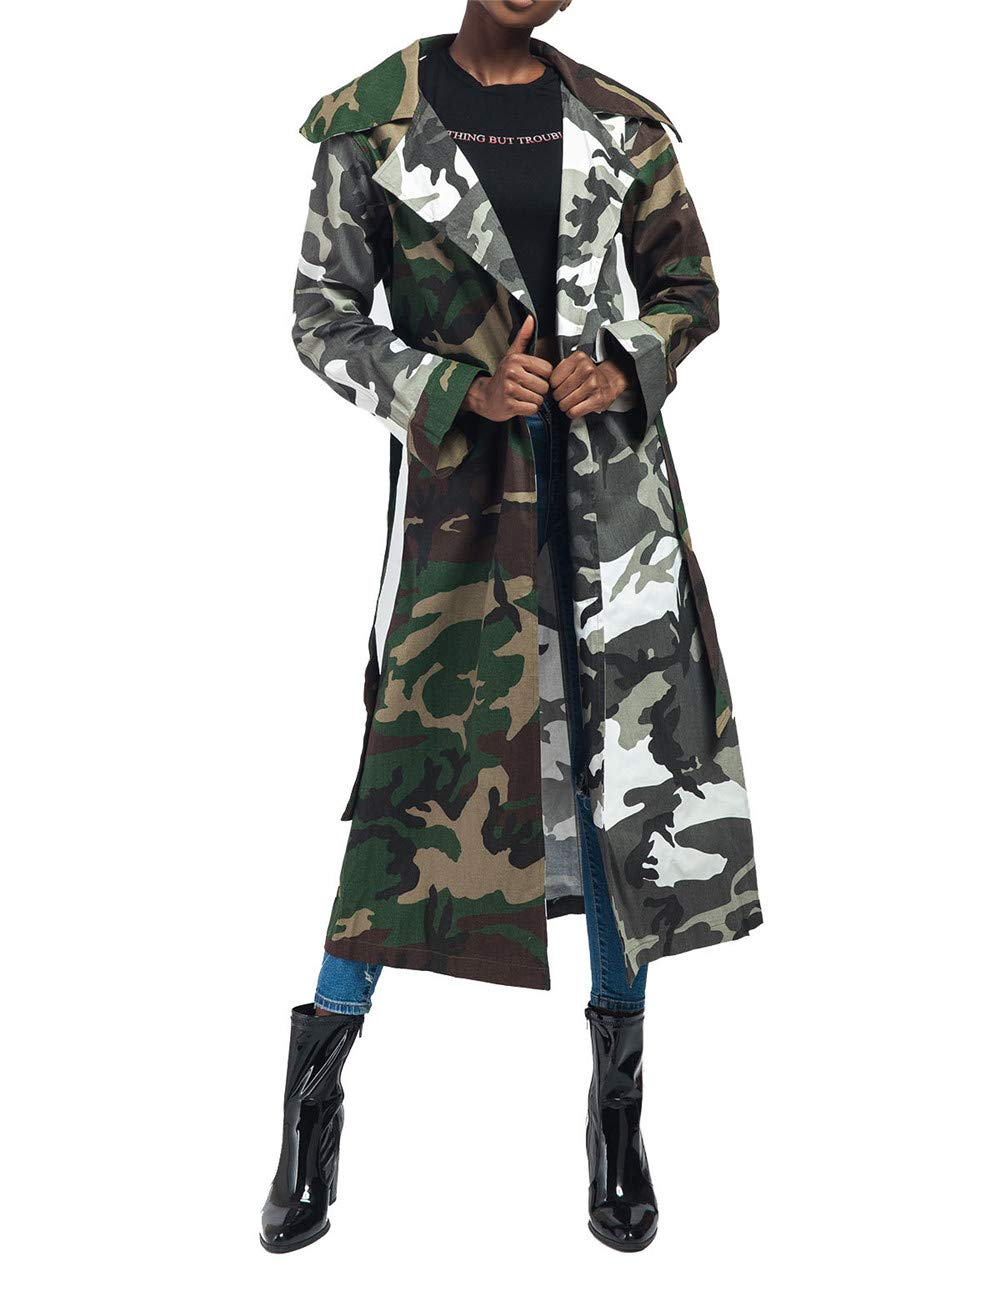 Antique Style Women's Casual Lapel Down Camo Lightweight Outwear Trench Coats Camouflage Printed Longline Safari Jackets Windbreaker Party Club Dress with Belt L by Antique Style